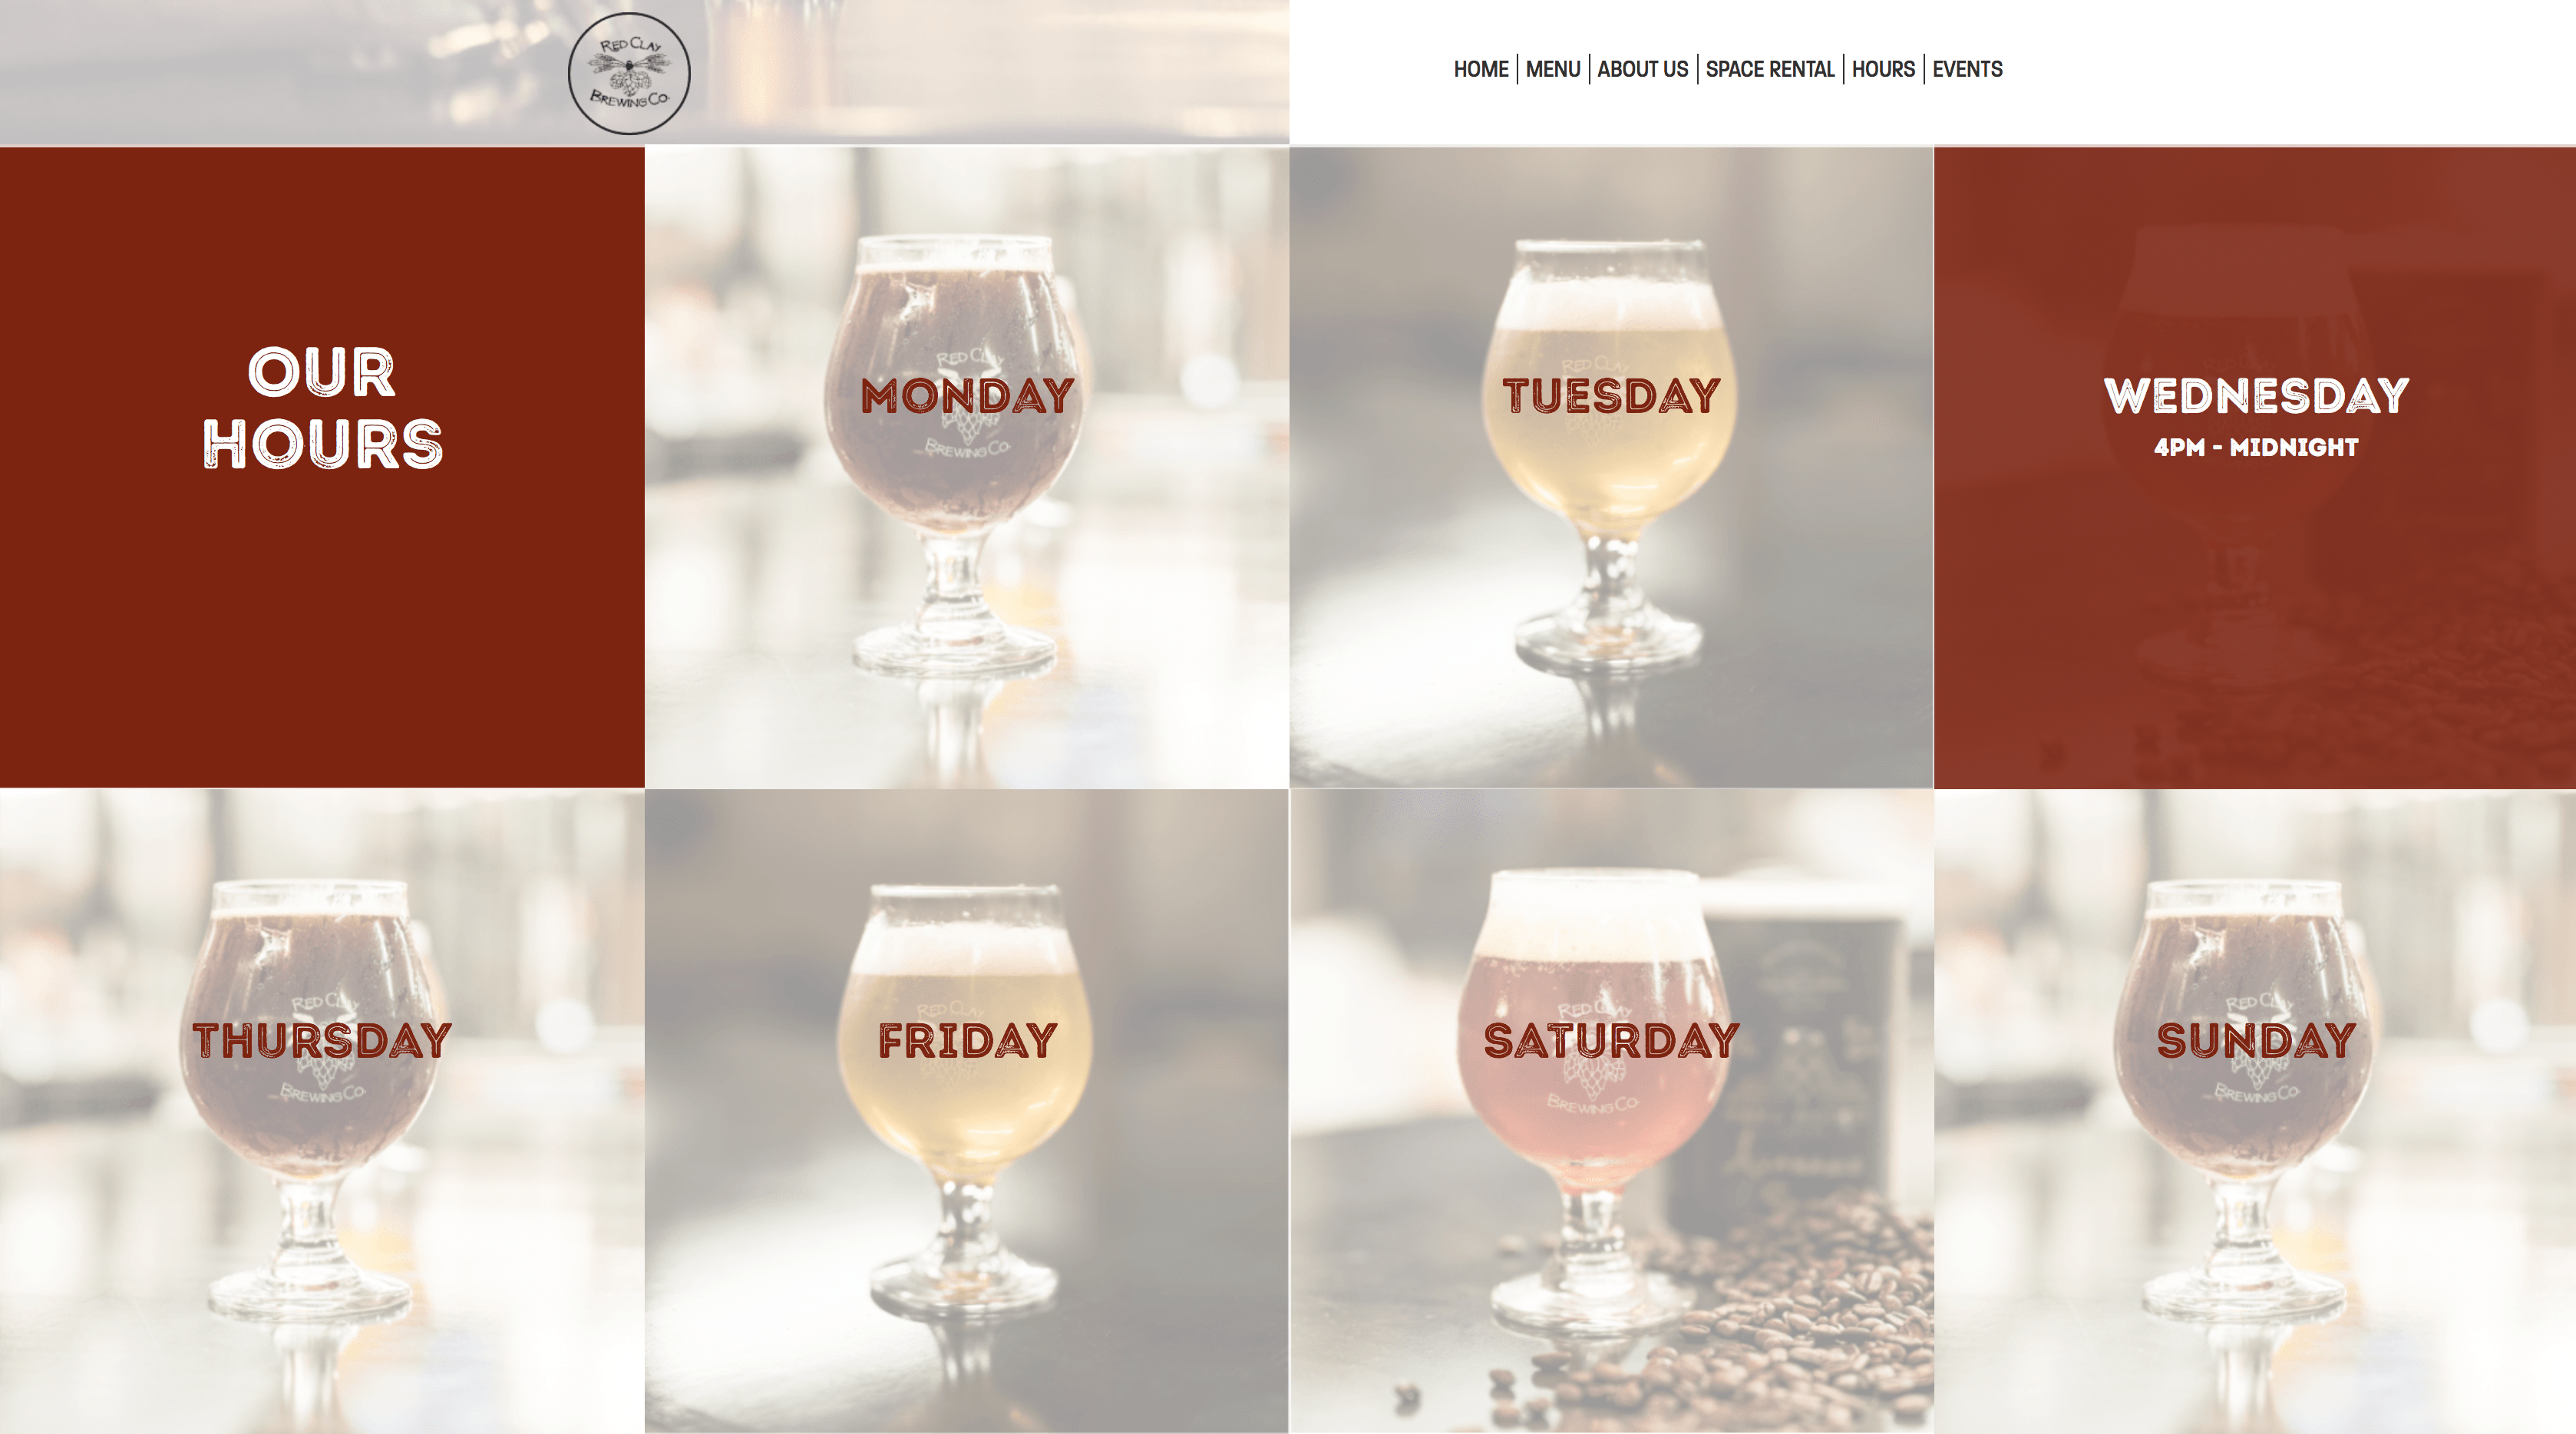 Red Clay Brewing Company website